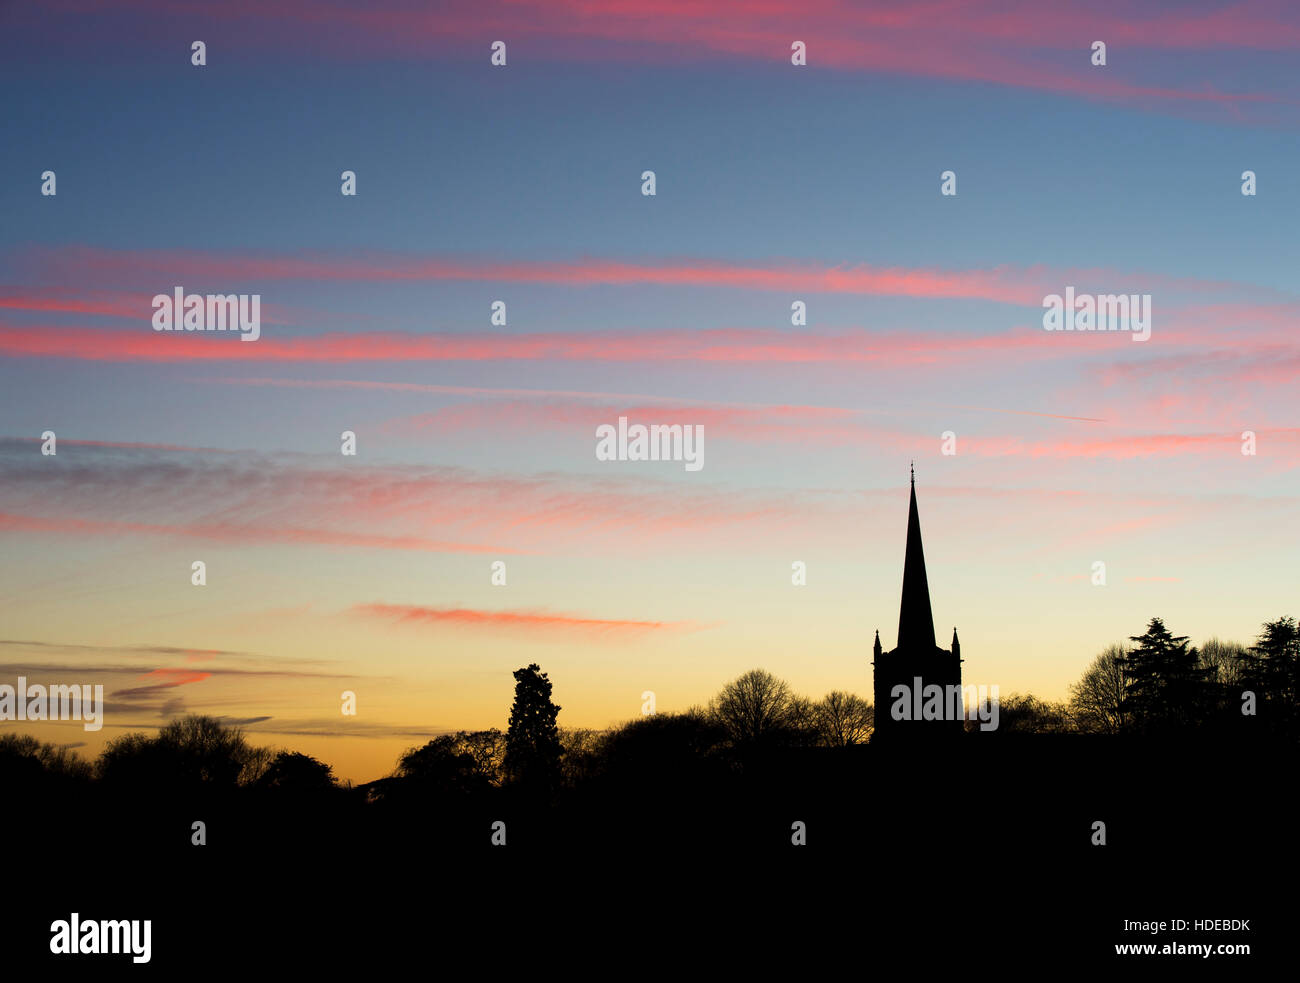 The Holy Trinity Church at sunset. Stratford upon Avon, Warwickshire, England. Silhouette - Stock Image